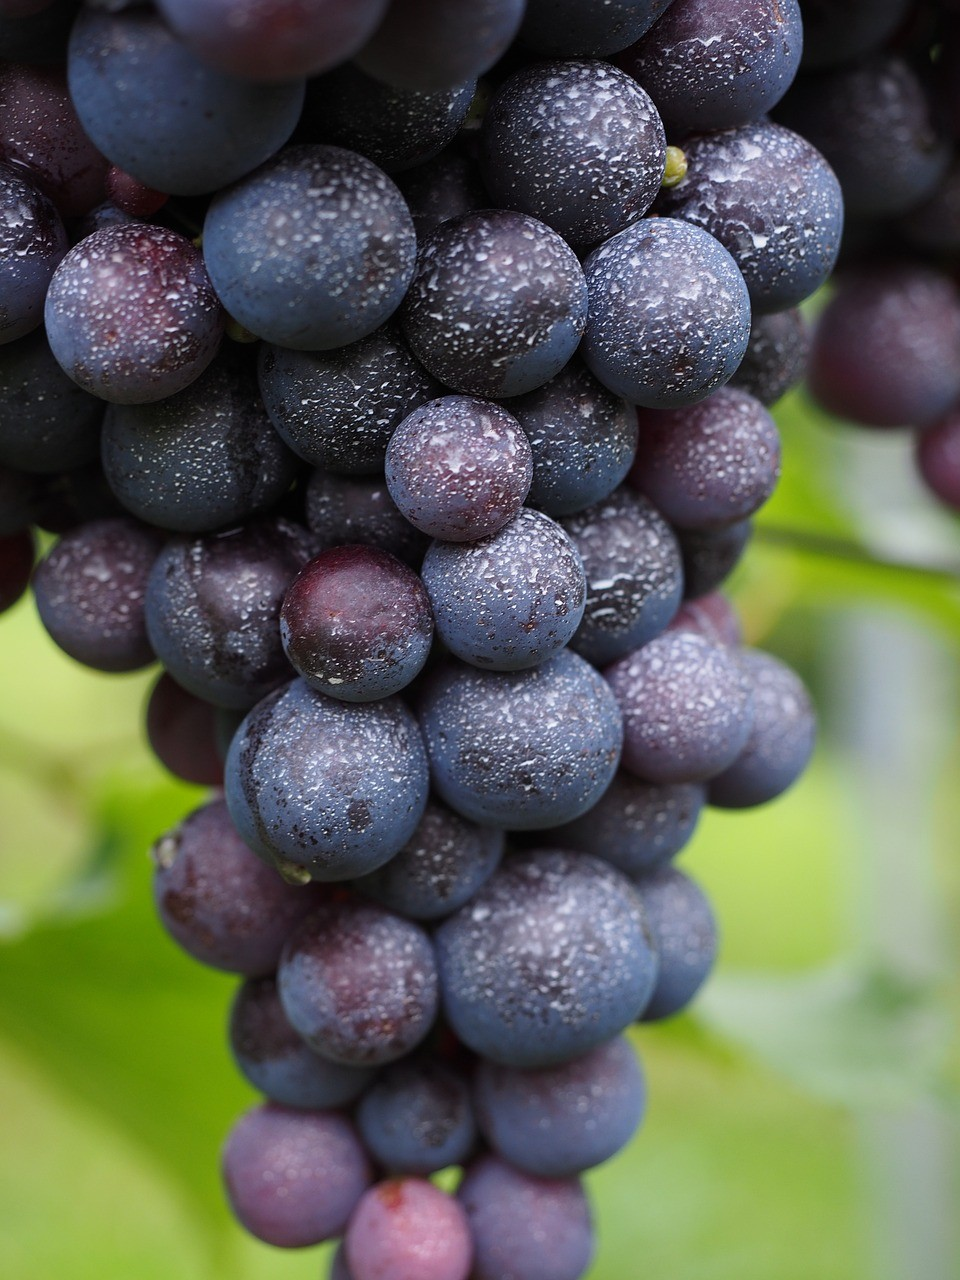 wine-berries-694185_1280